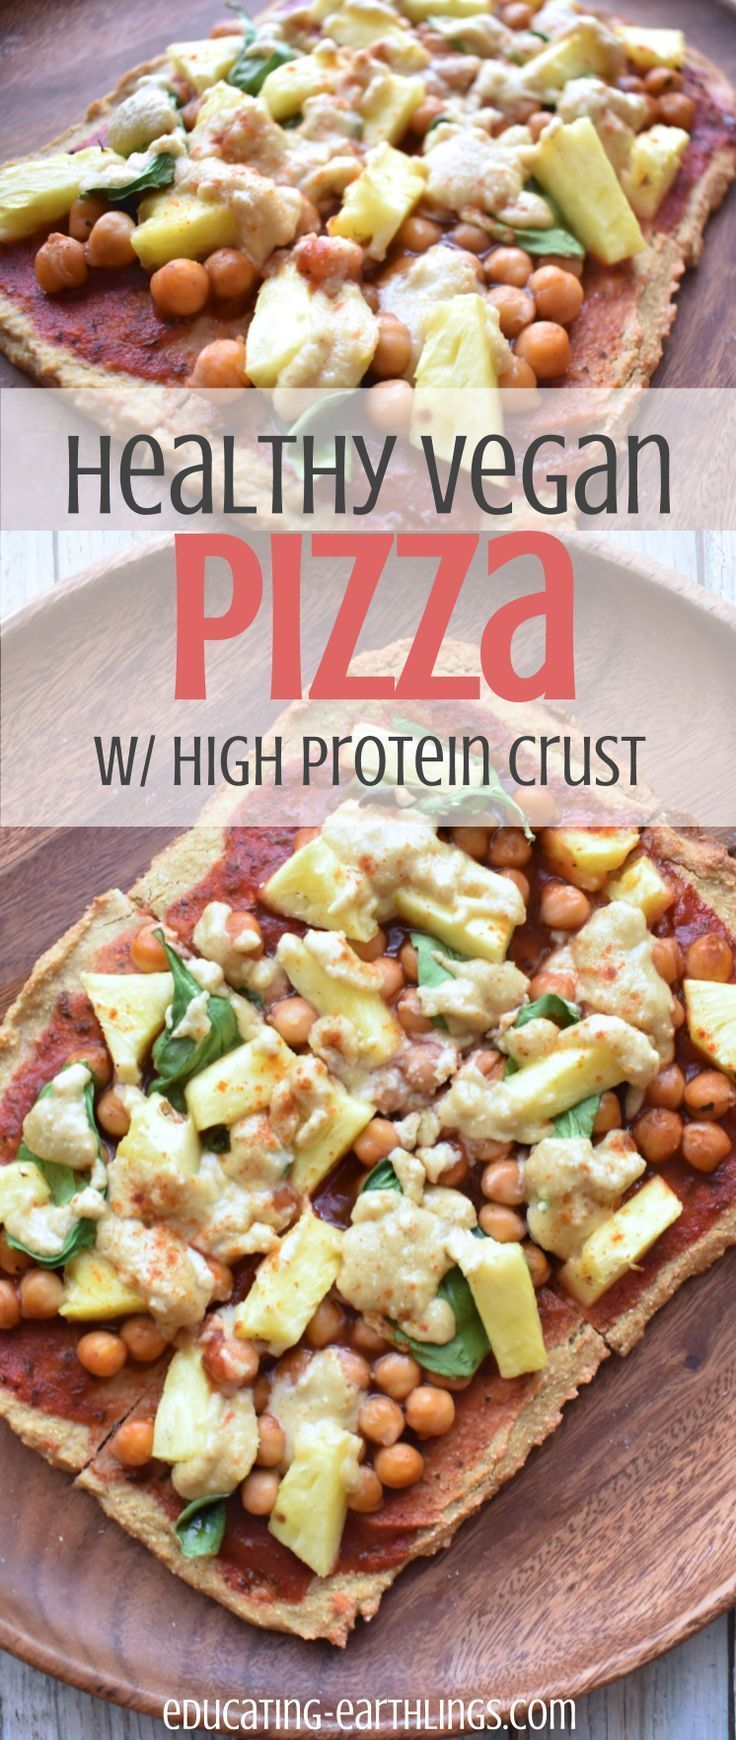 High Protein Pizza Crust Gluten Free Vegan